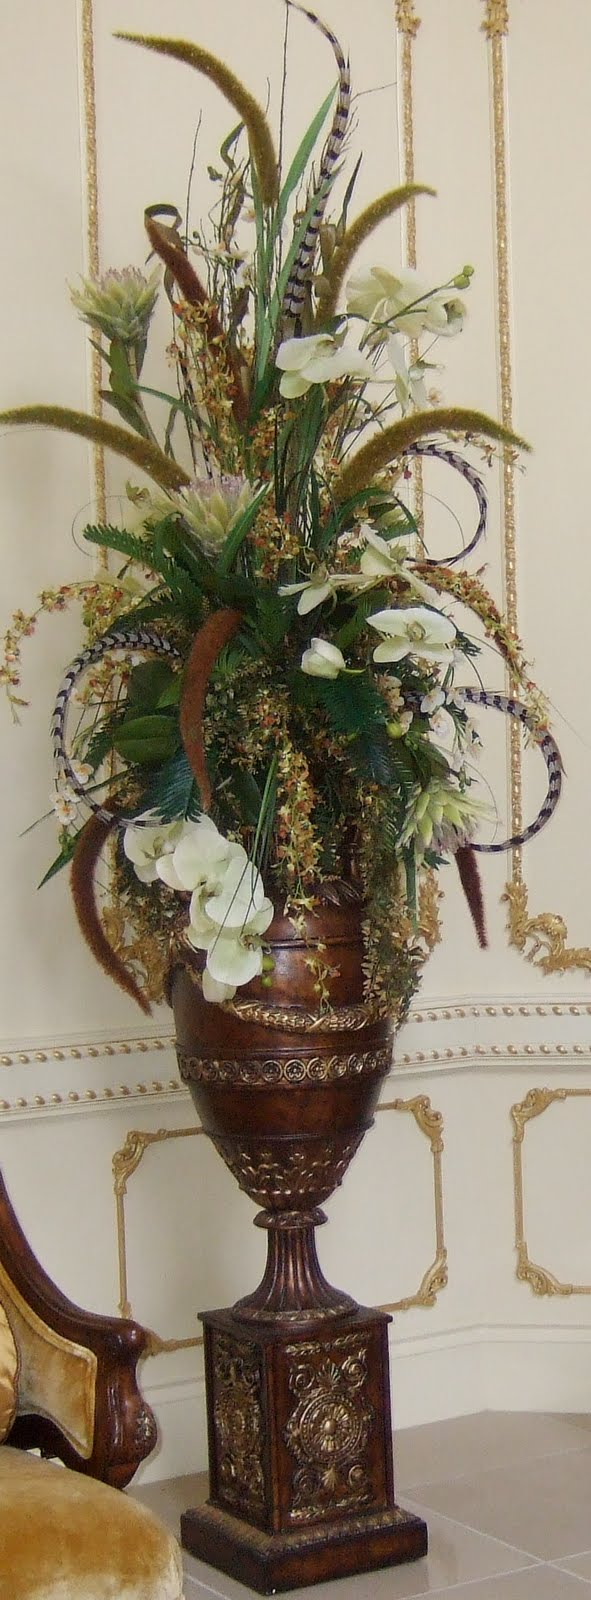 Ana silk flowers images beautiful and luxury huge for Picture arrangements for large walls